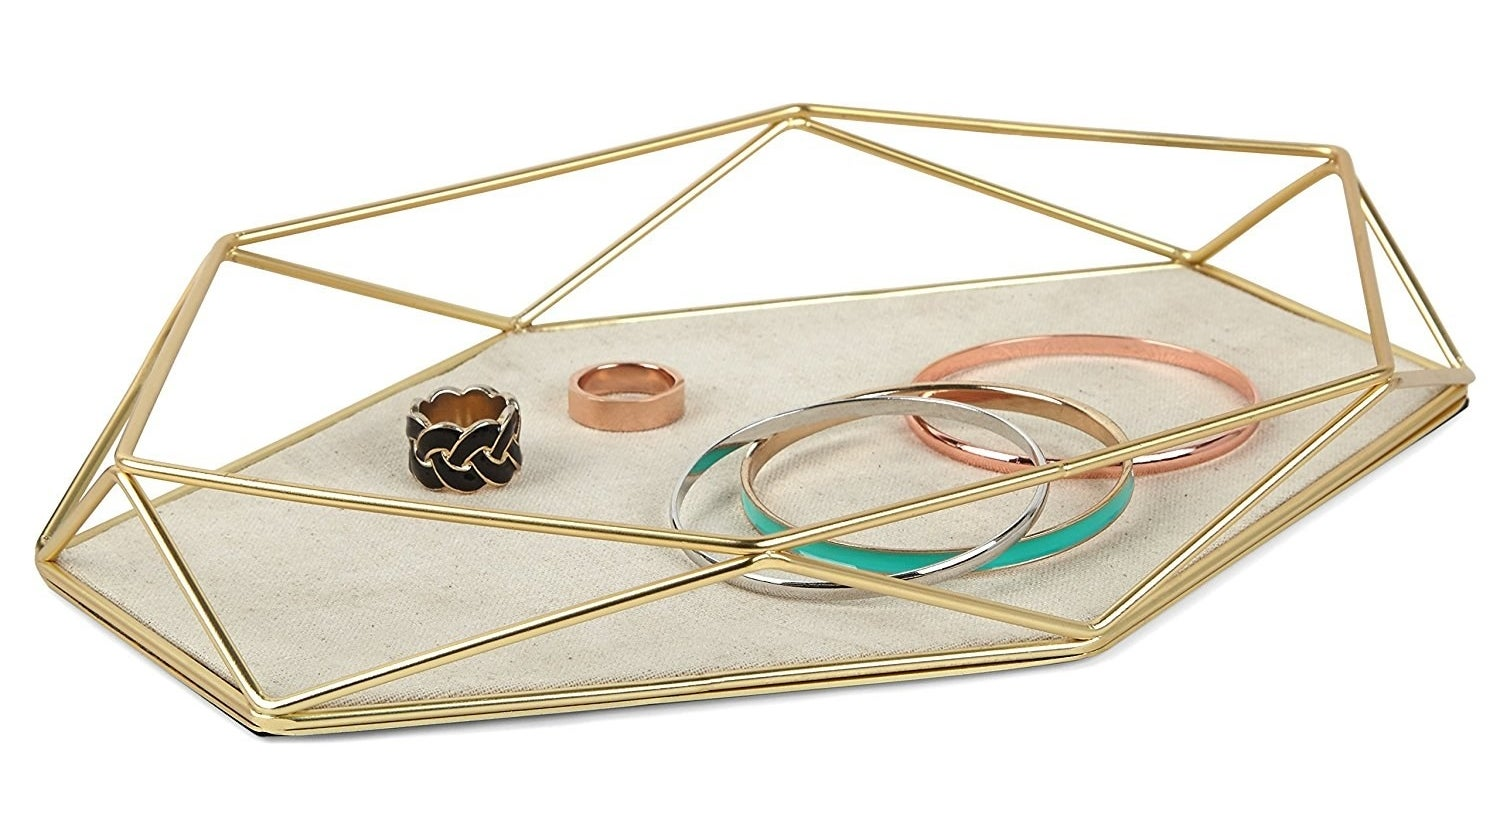 The hexagon shaped tray with gold tone geometric design walls